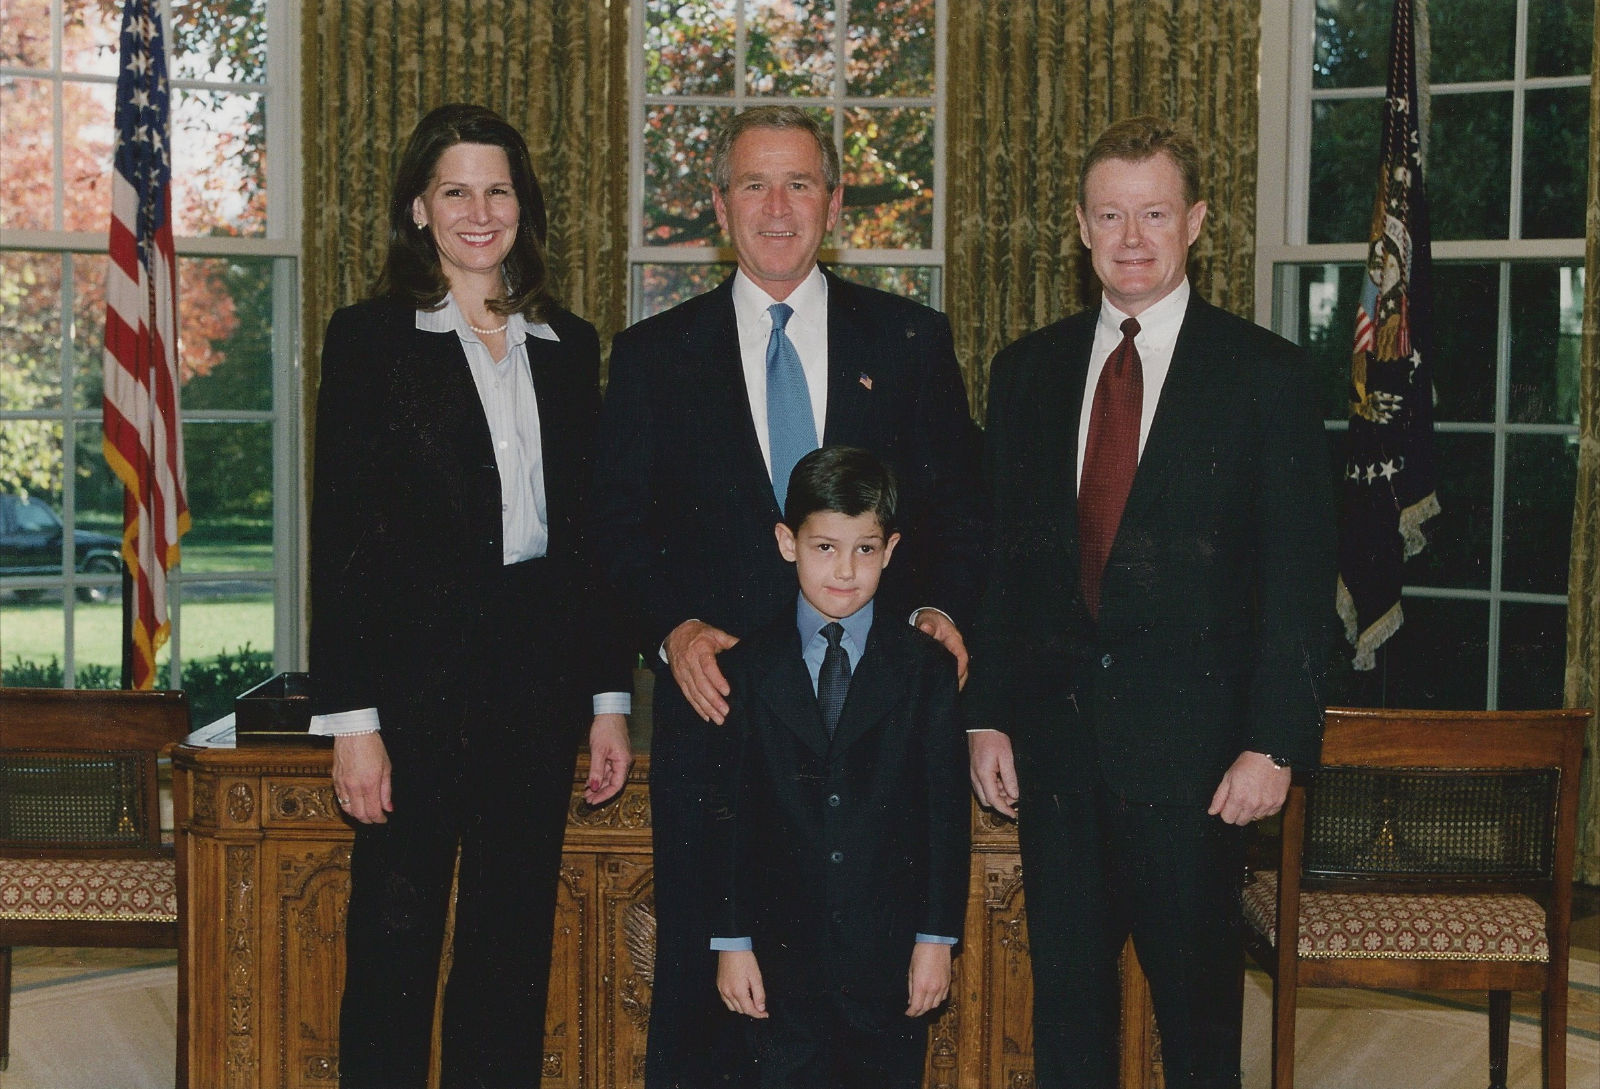 Dan Emmett, wife, and son with President Bush